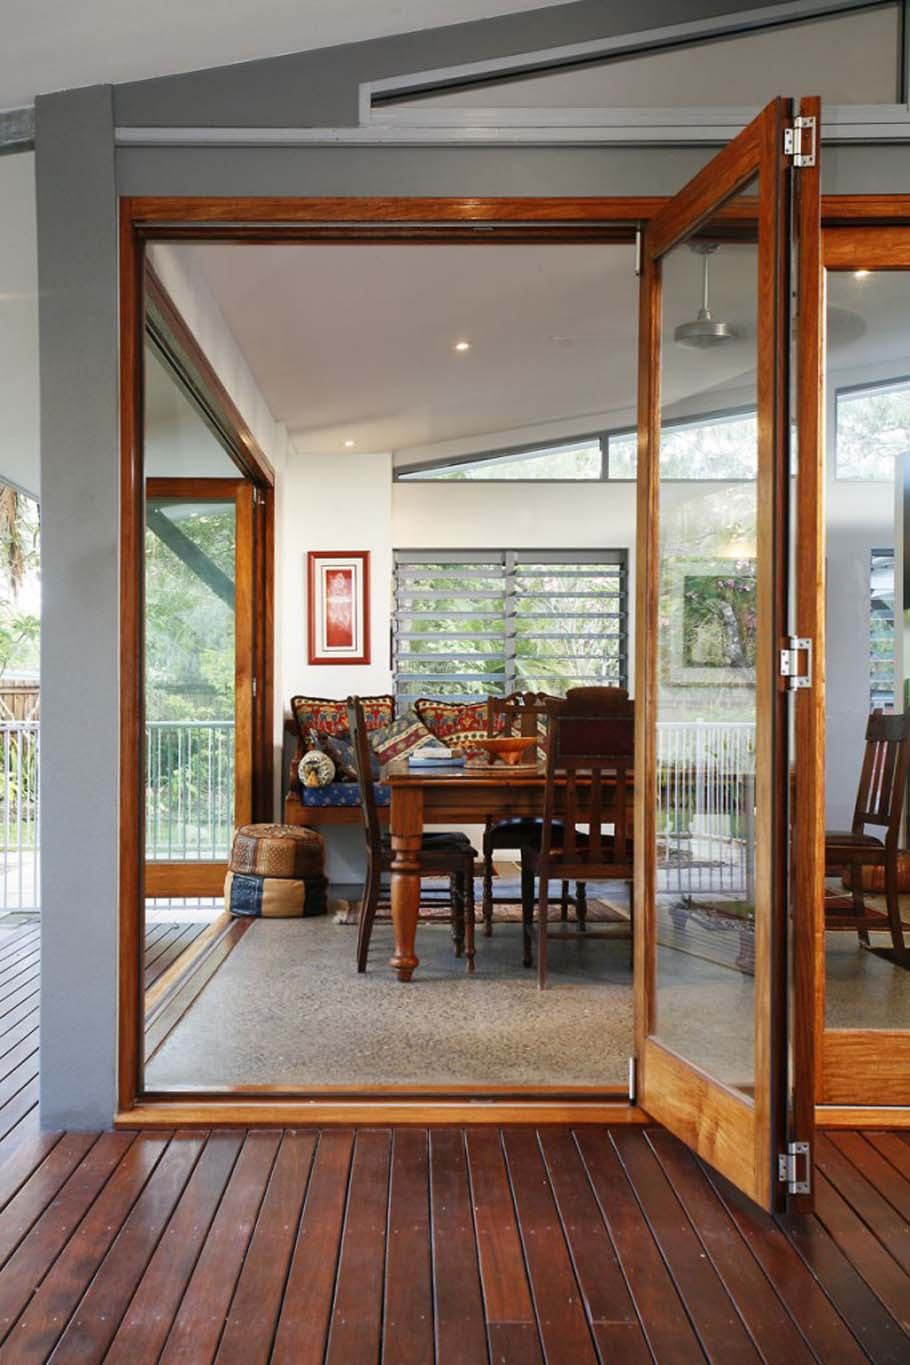 Folding door separating room opens to reveal dining area